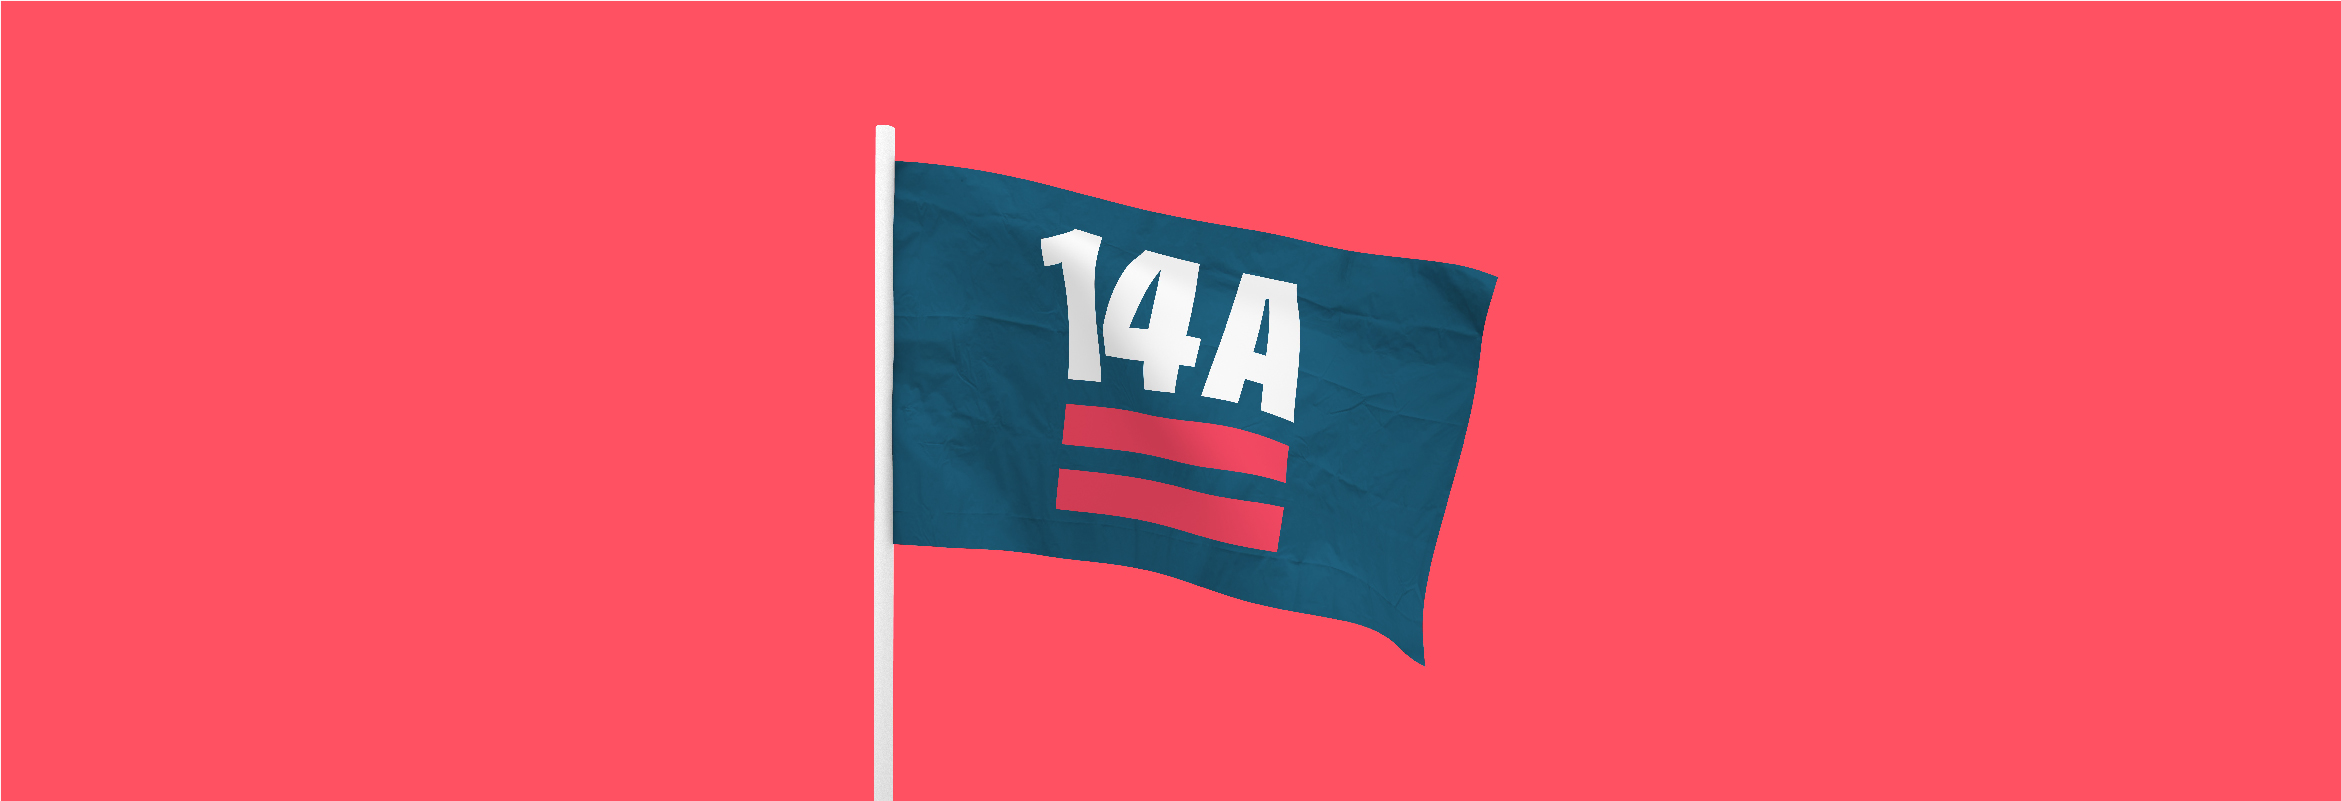 Dark blue flag with 14A campaign logo with white letters for 14A and red for the equal sign graphic that falls below the 14A text.